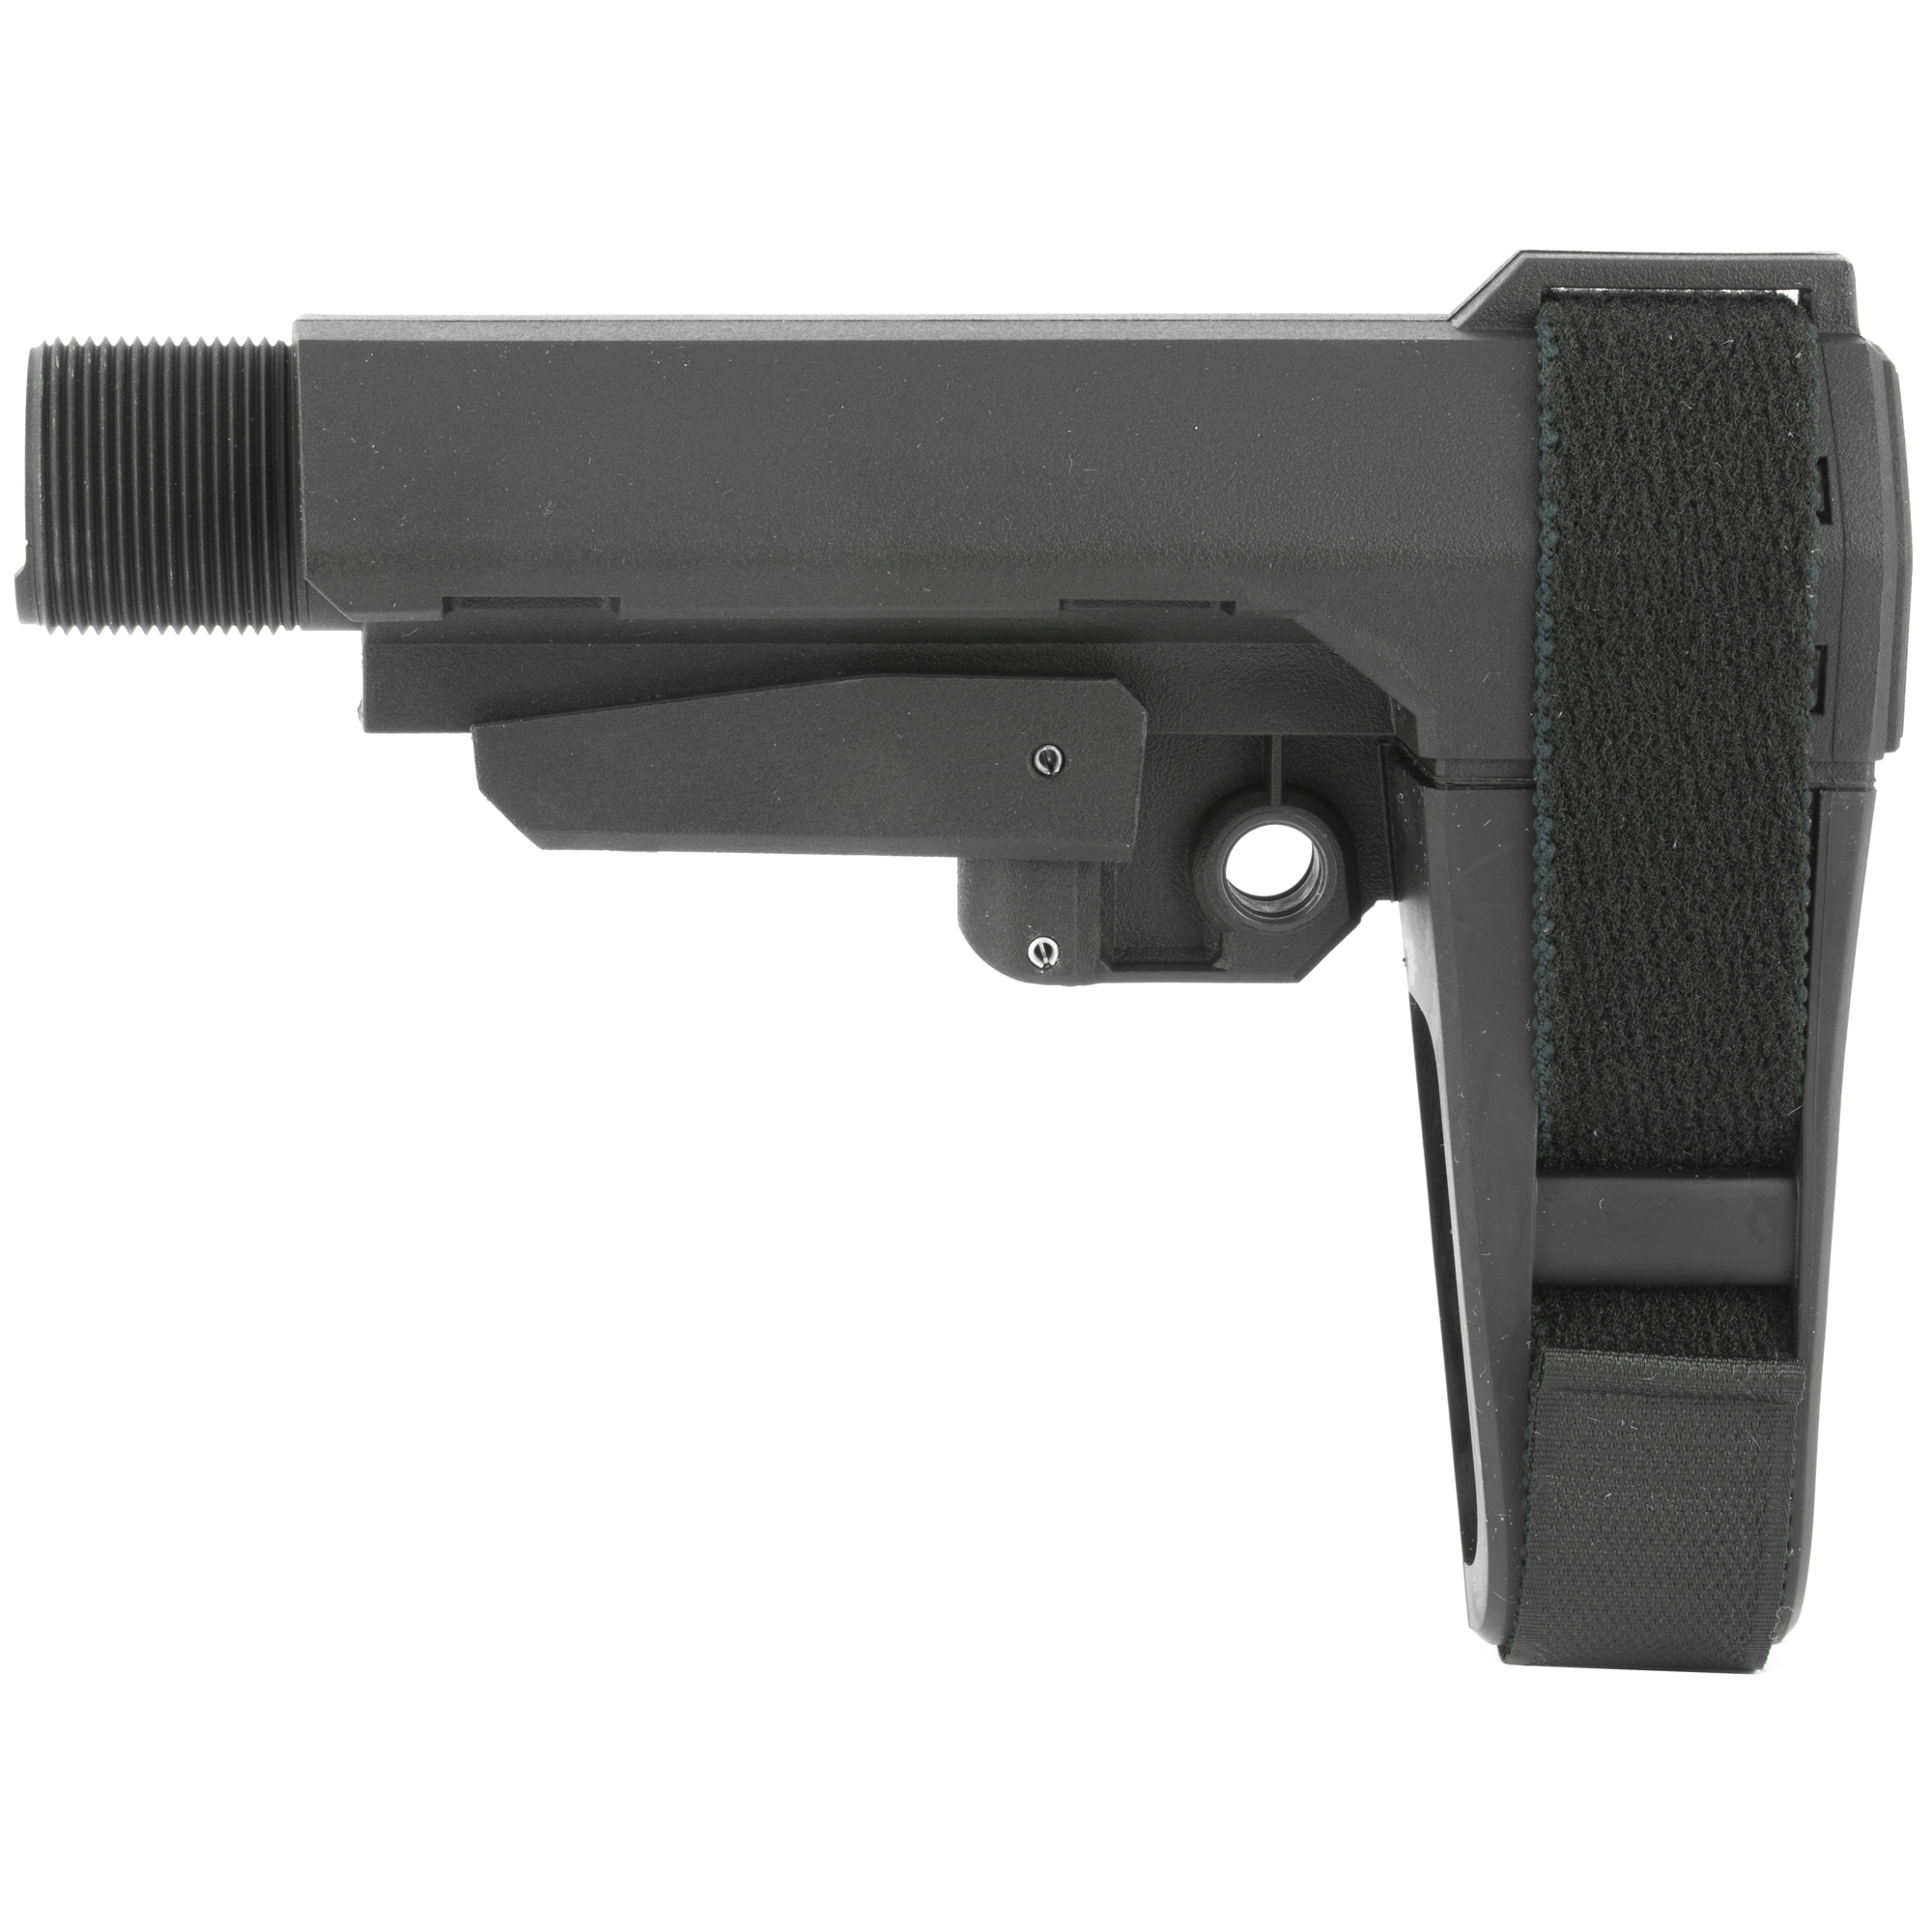 """The SB Tactical SBA3 Stabilizing Brace for AR/M4 is designed for all platforms capable of accepting a mil-spec carbine receiver extension. The SBA3 is 5-position adjustable"""" dramatically enhances versatility"""" and features a minimalist design with an integral"""" ambidextrous QD sling socket."""